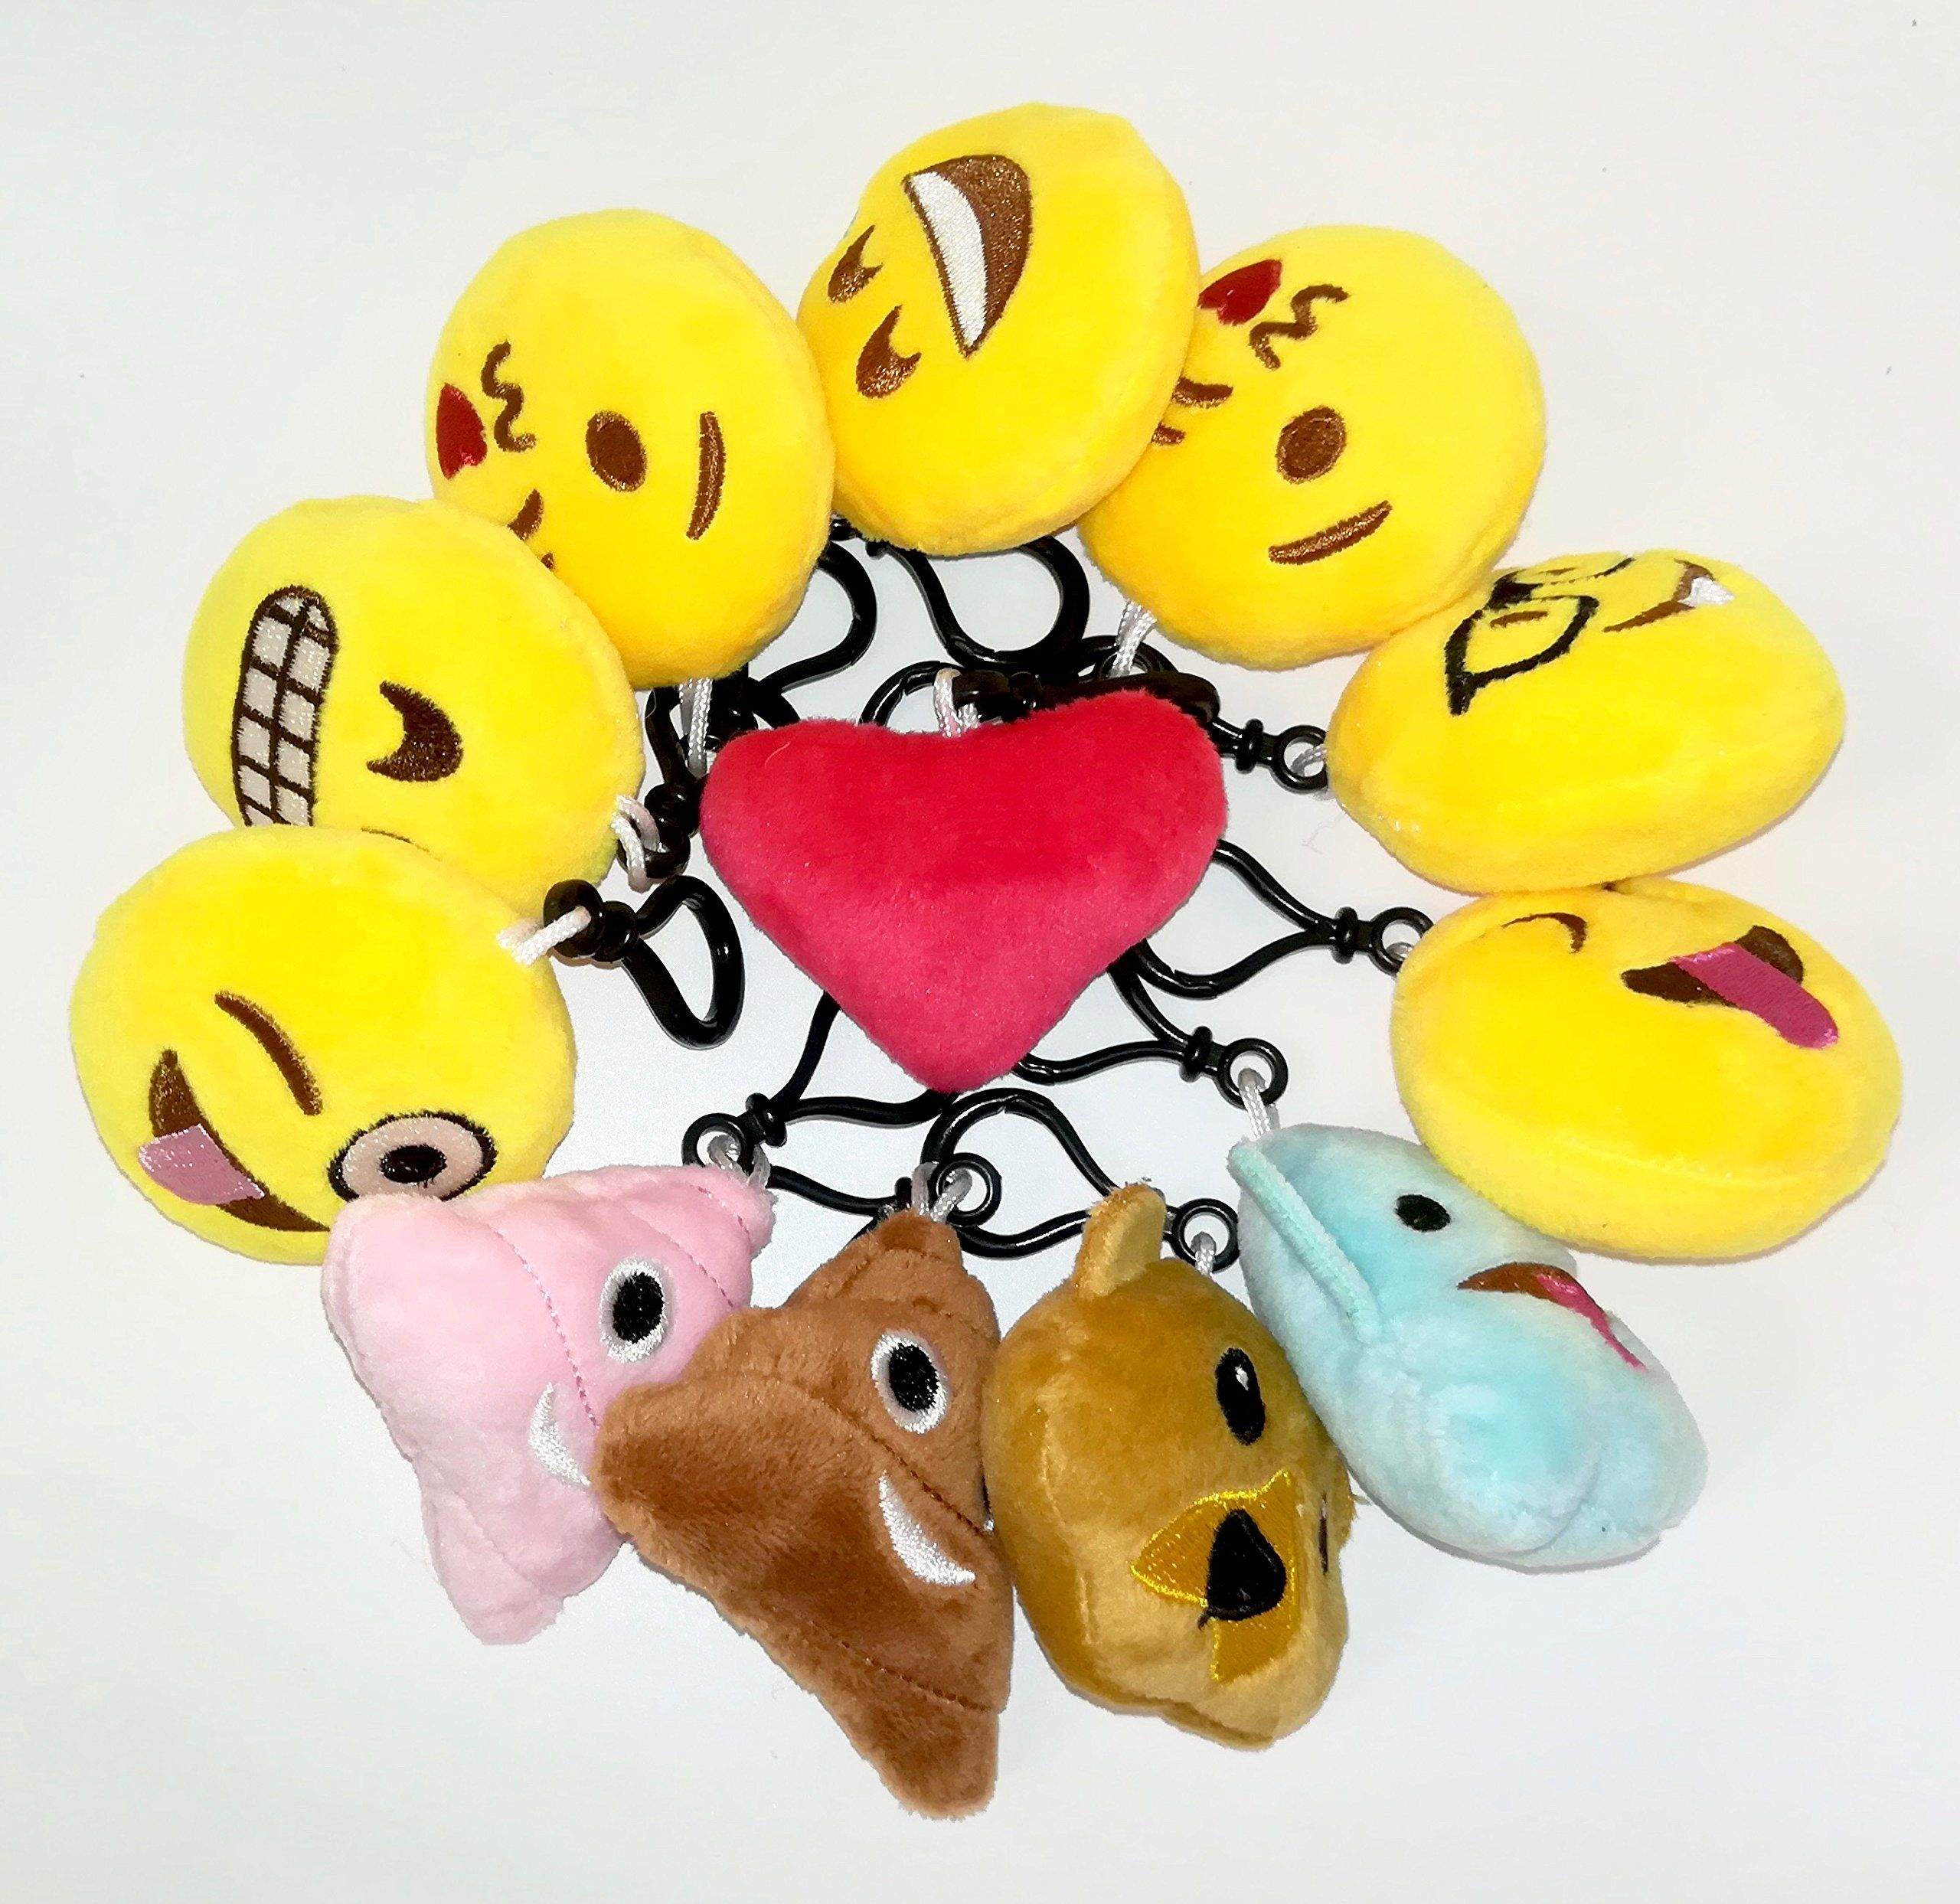 OHill 60 Pack Emoji Plush Pillows Mini Keychain Decorations for ...